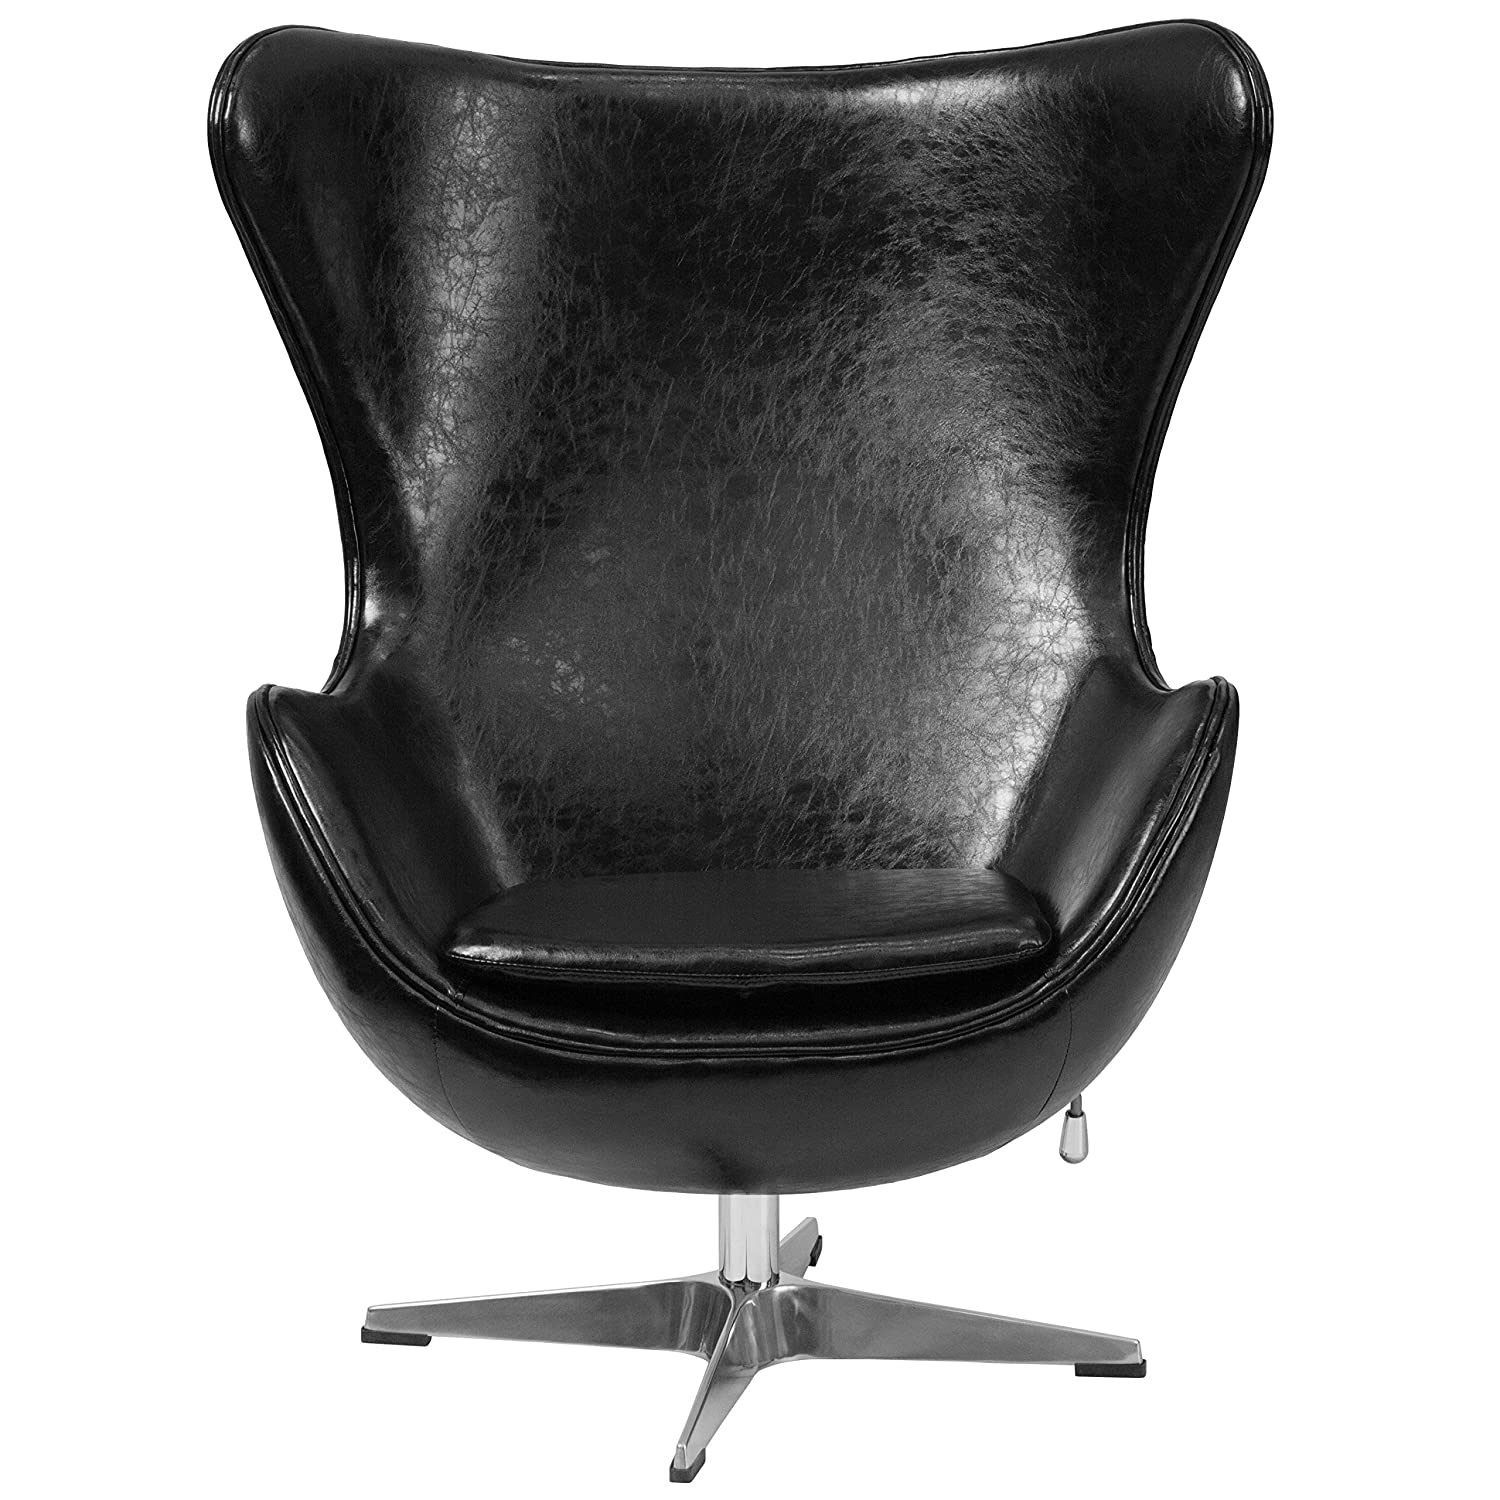 Amazon Flash Furniture Black Leather Egg Chair with Tilt Lock